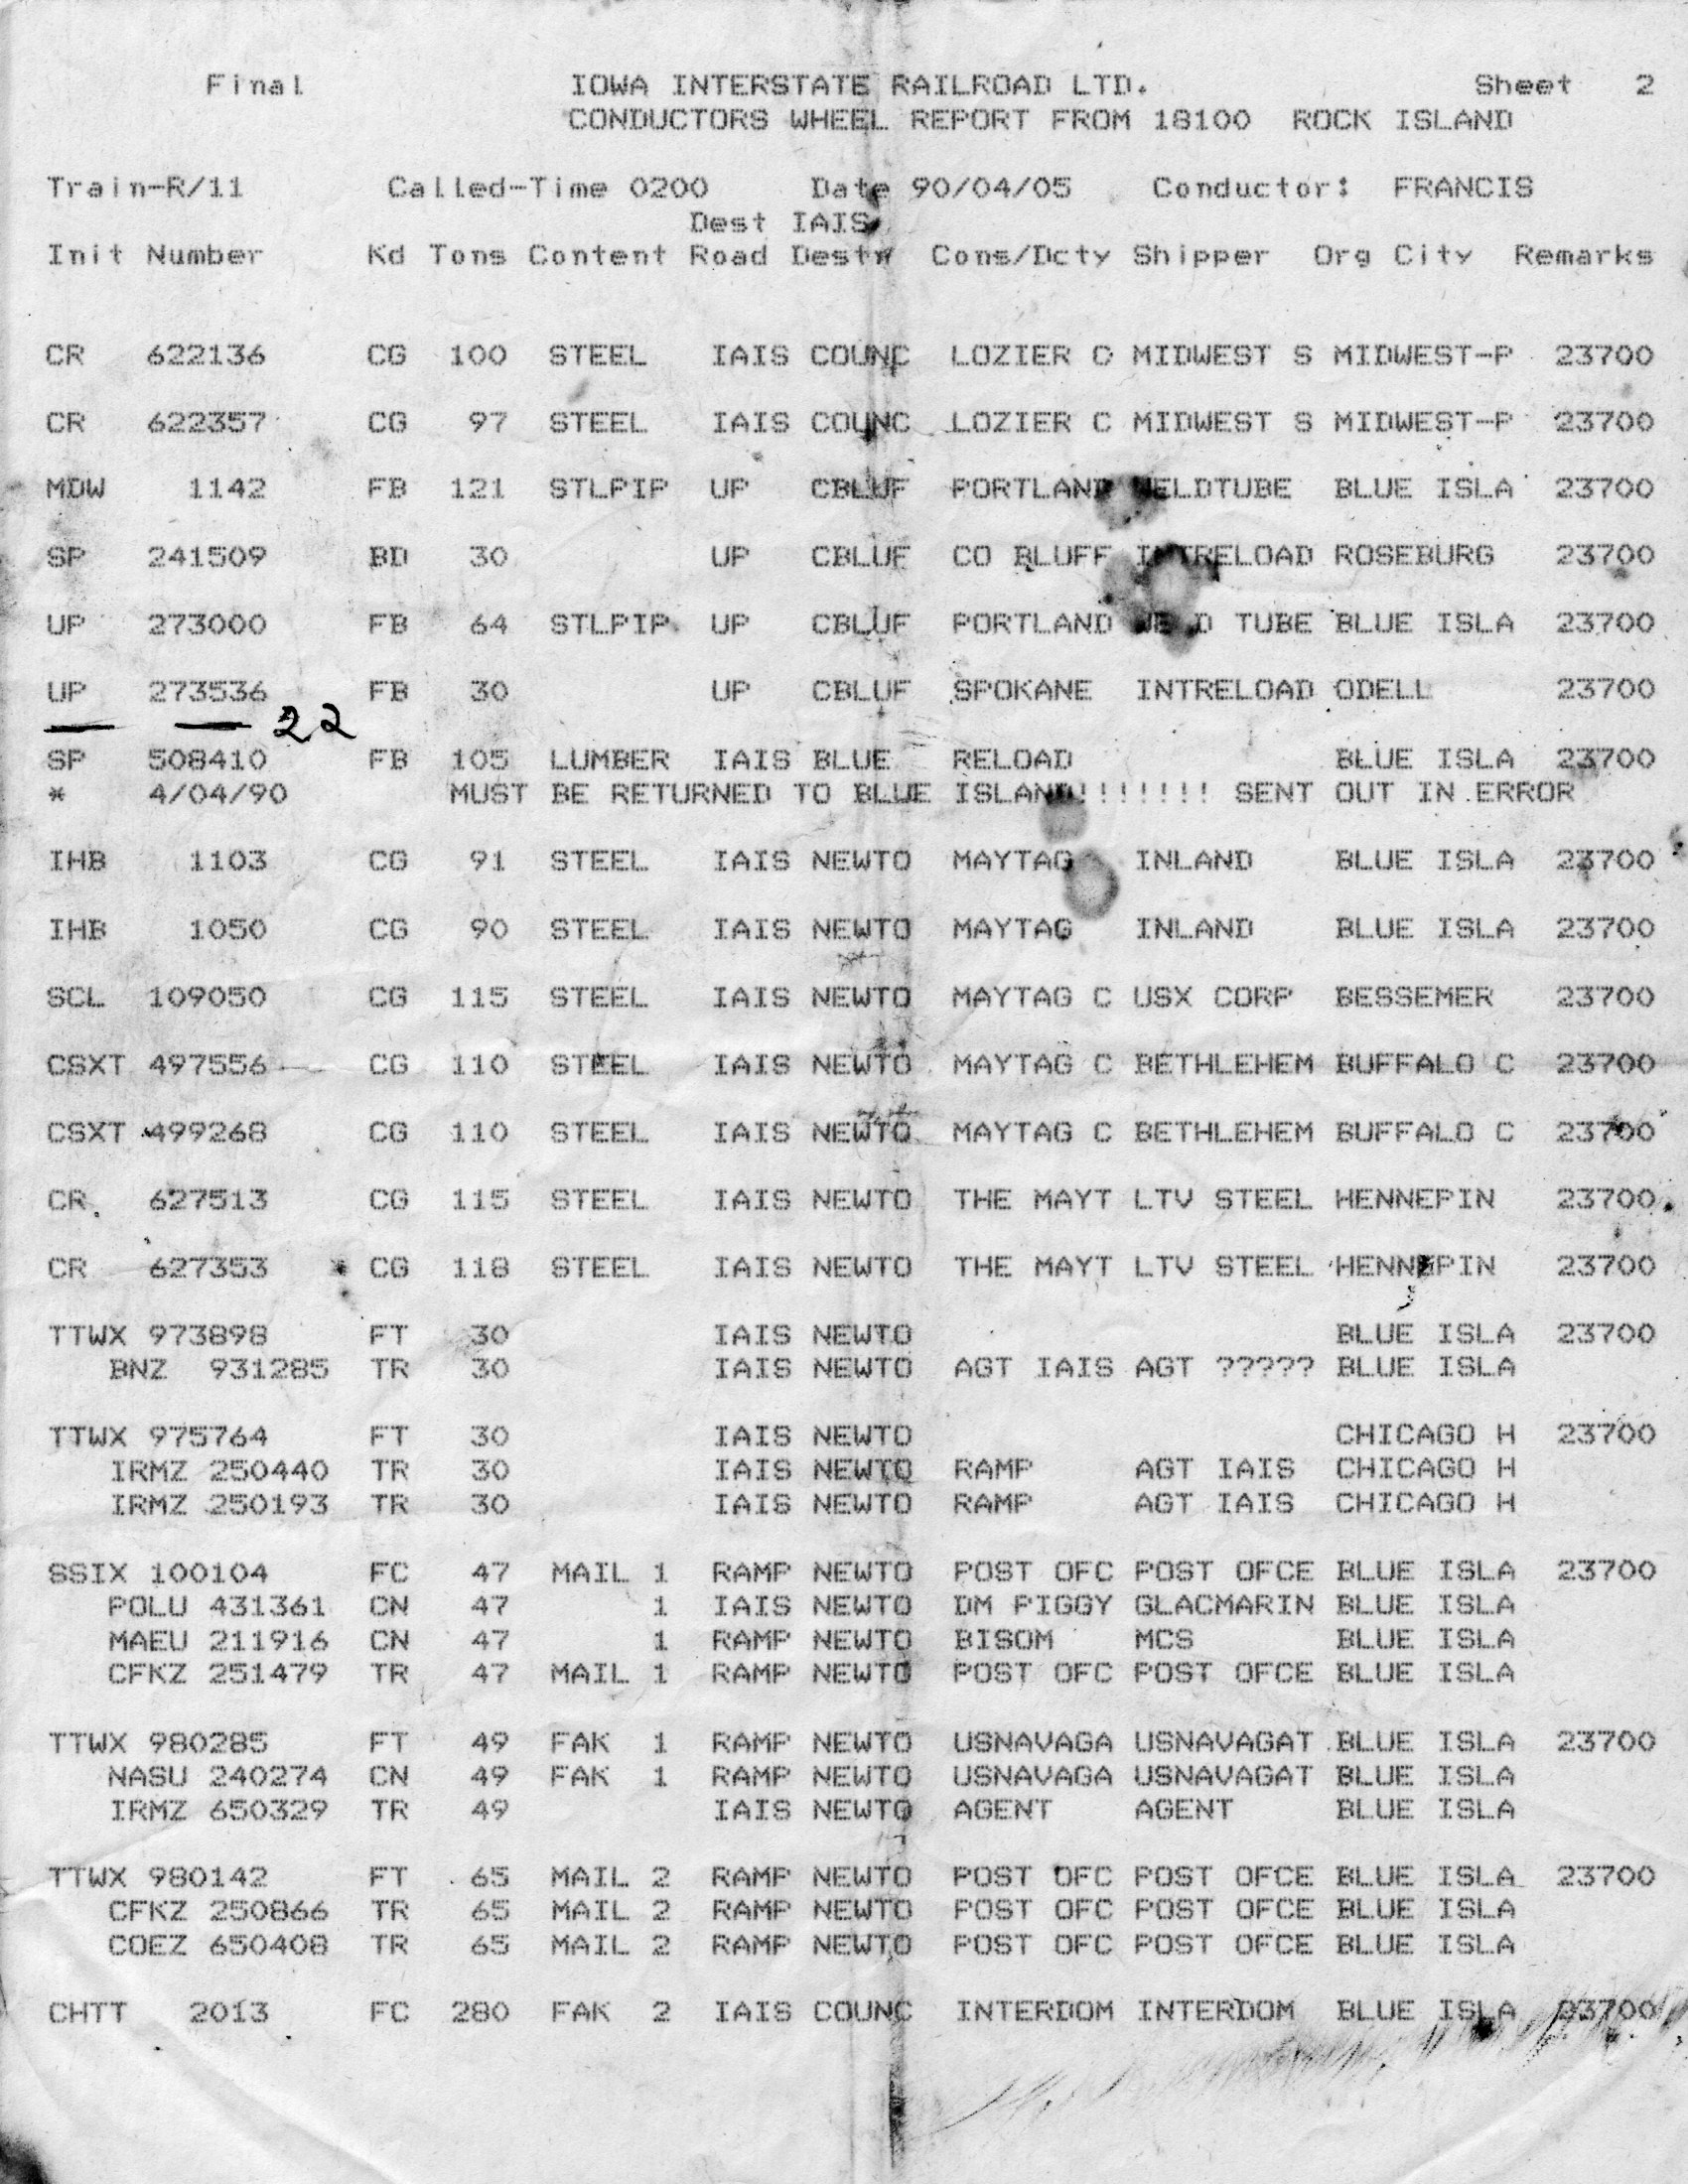 Wheel Report from West Train, 5-Apr-1990, Page 2